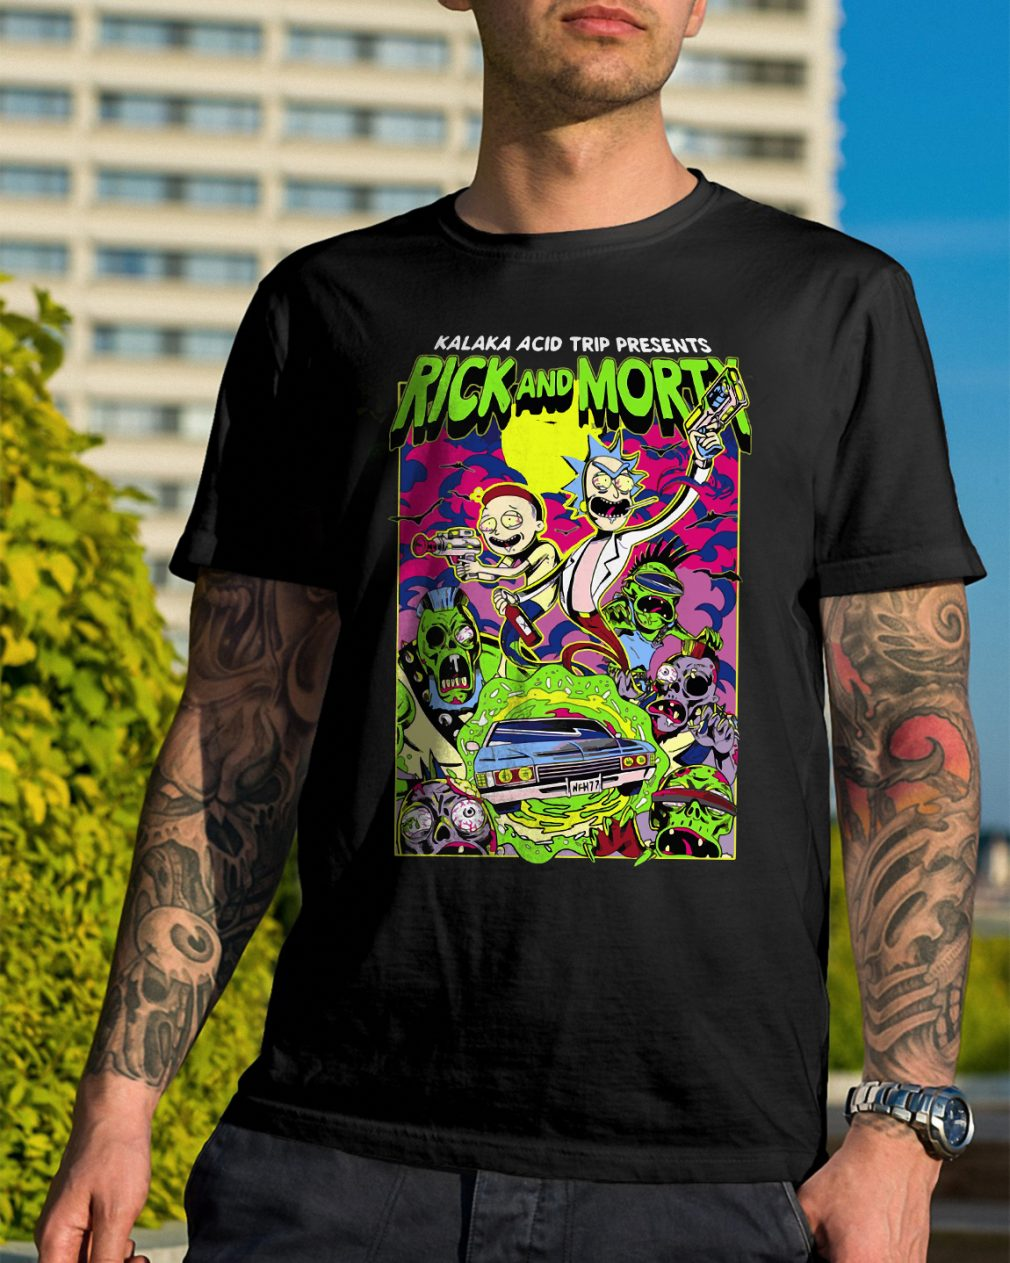 Rick Morty Kalaka Acid Trip Presents Shirt